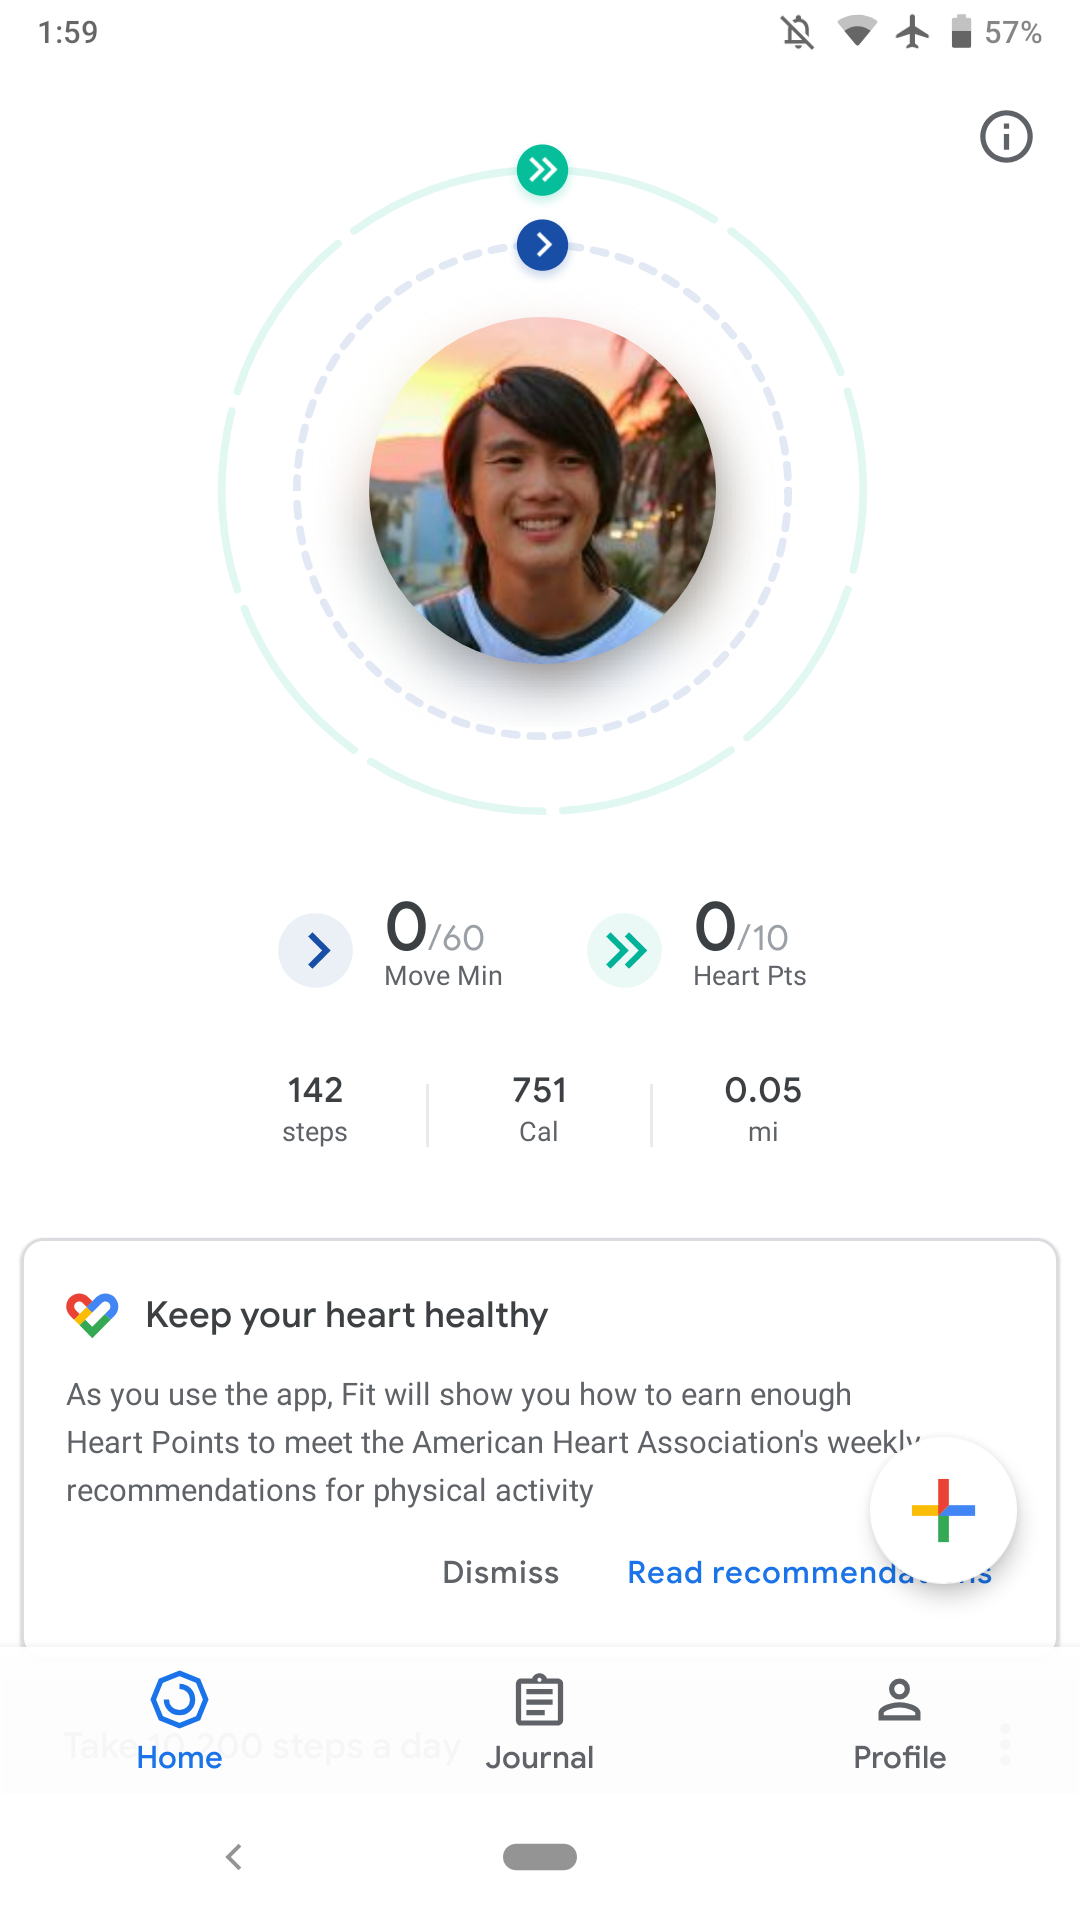 Scrolling Down Further In The Home Tab Are Graphs For Step Count Heart Rate If Available And Weight